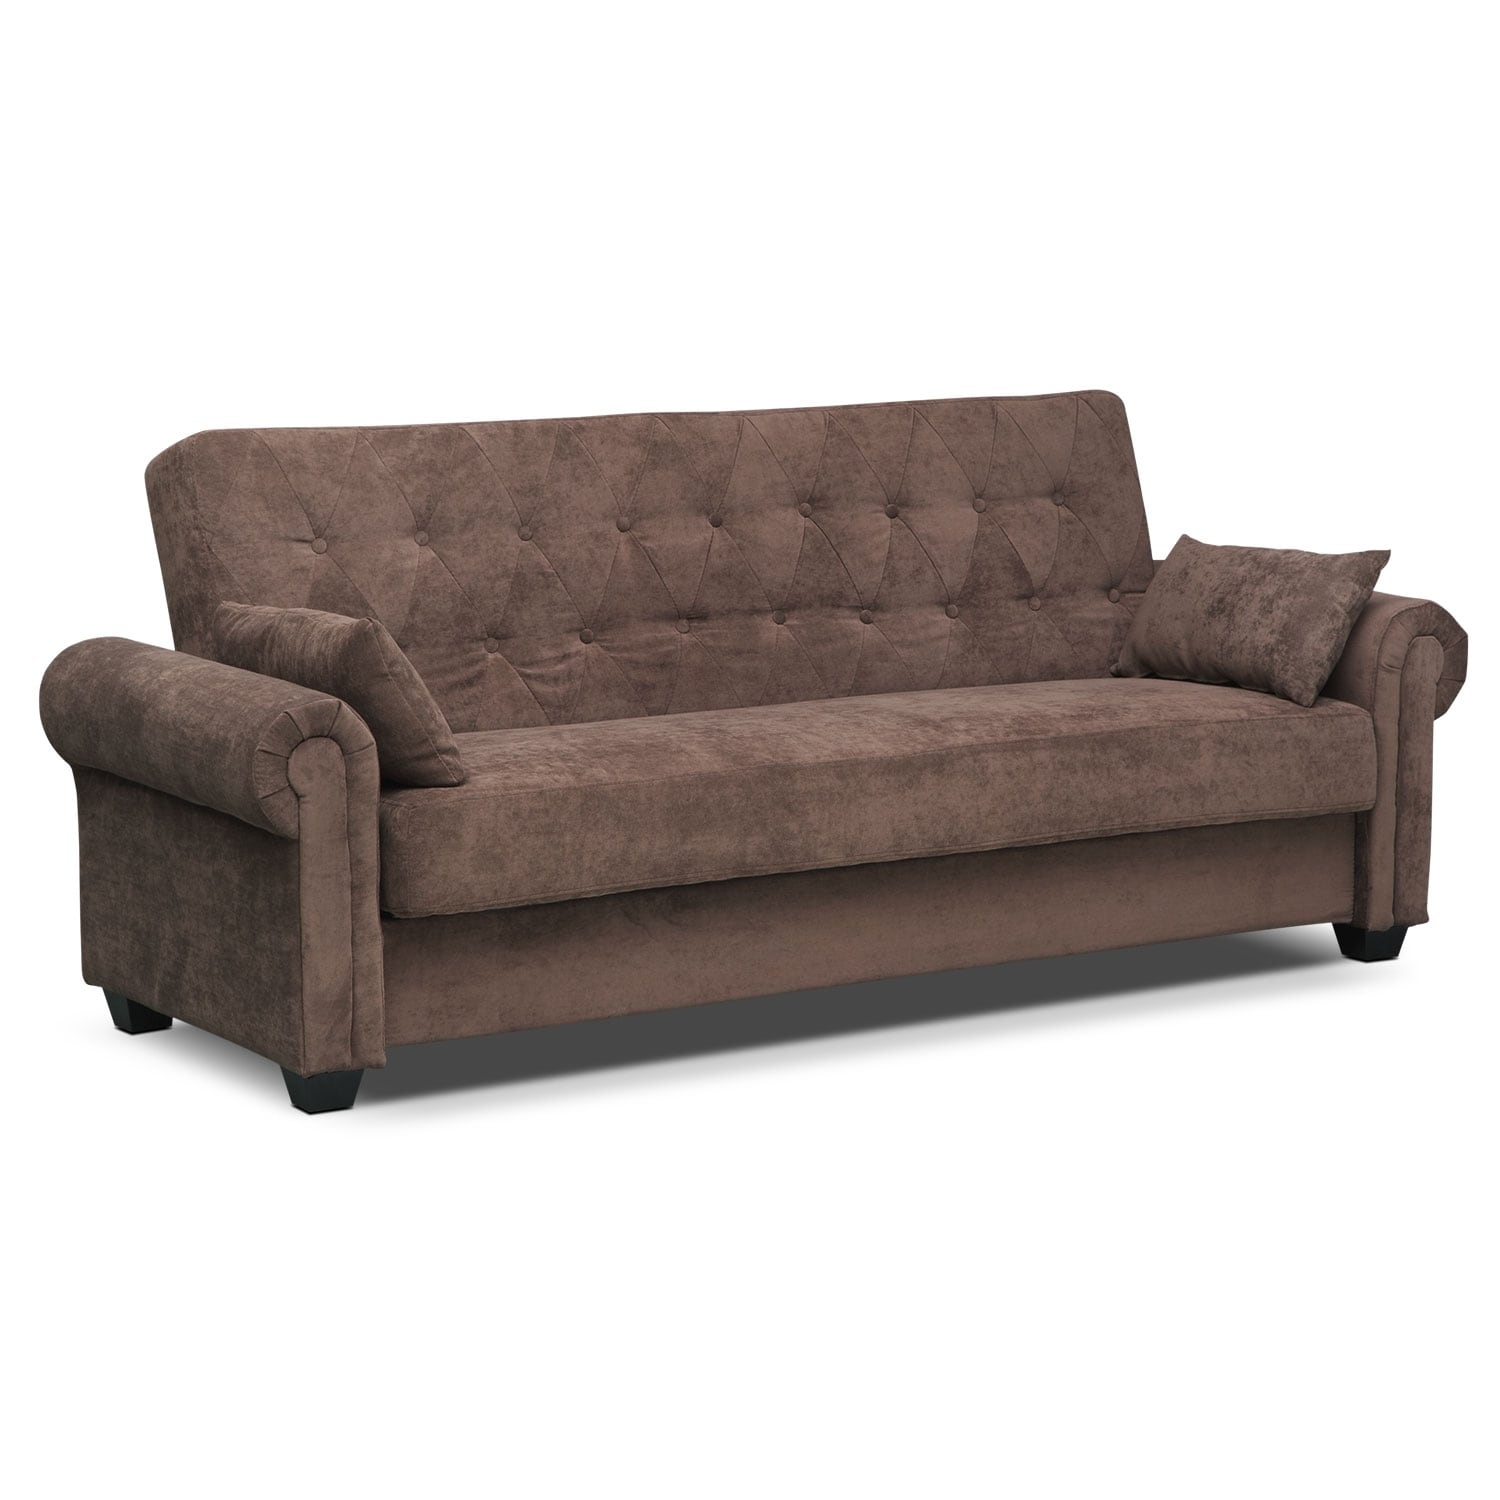 Andrea Upholstery Futon Sofa Bed With Storage Value City